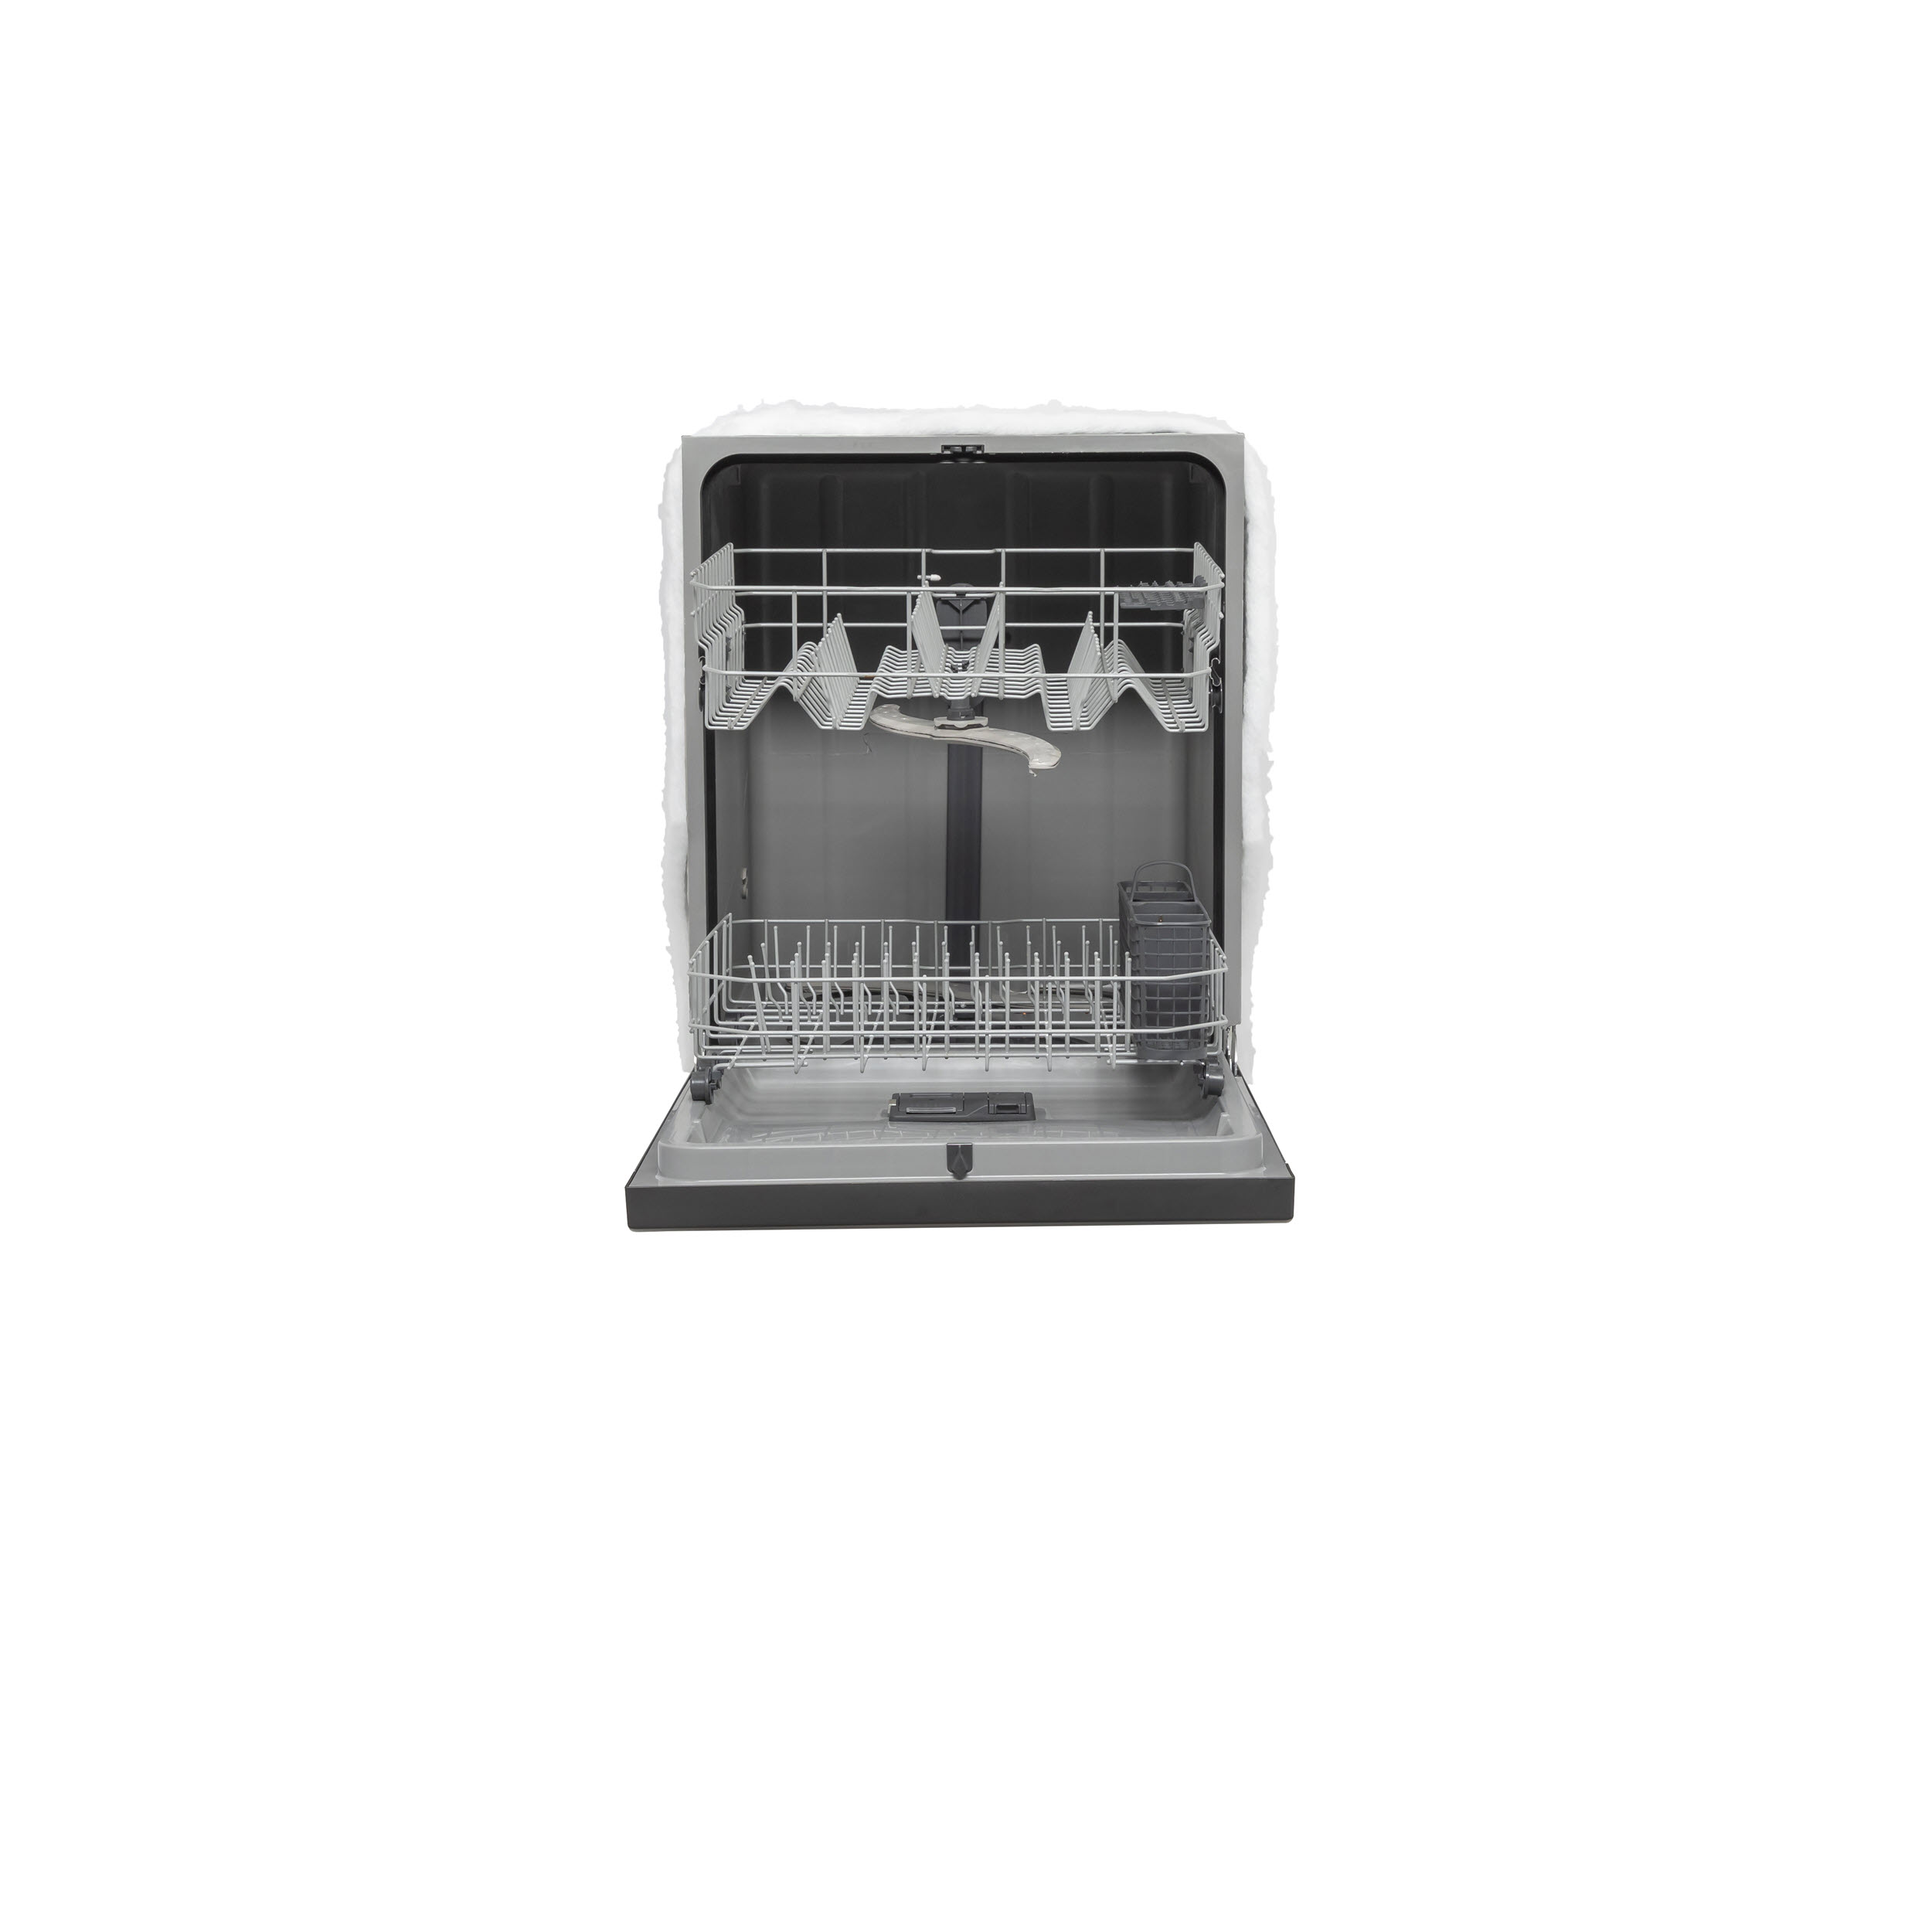 Model: GDF535PSRSS | GE GE® Dishwasher with Front Controls